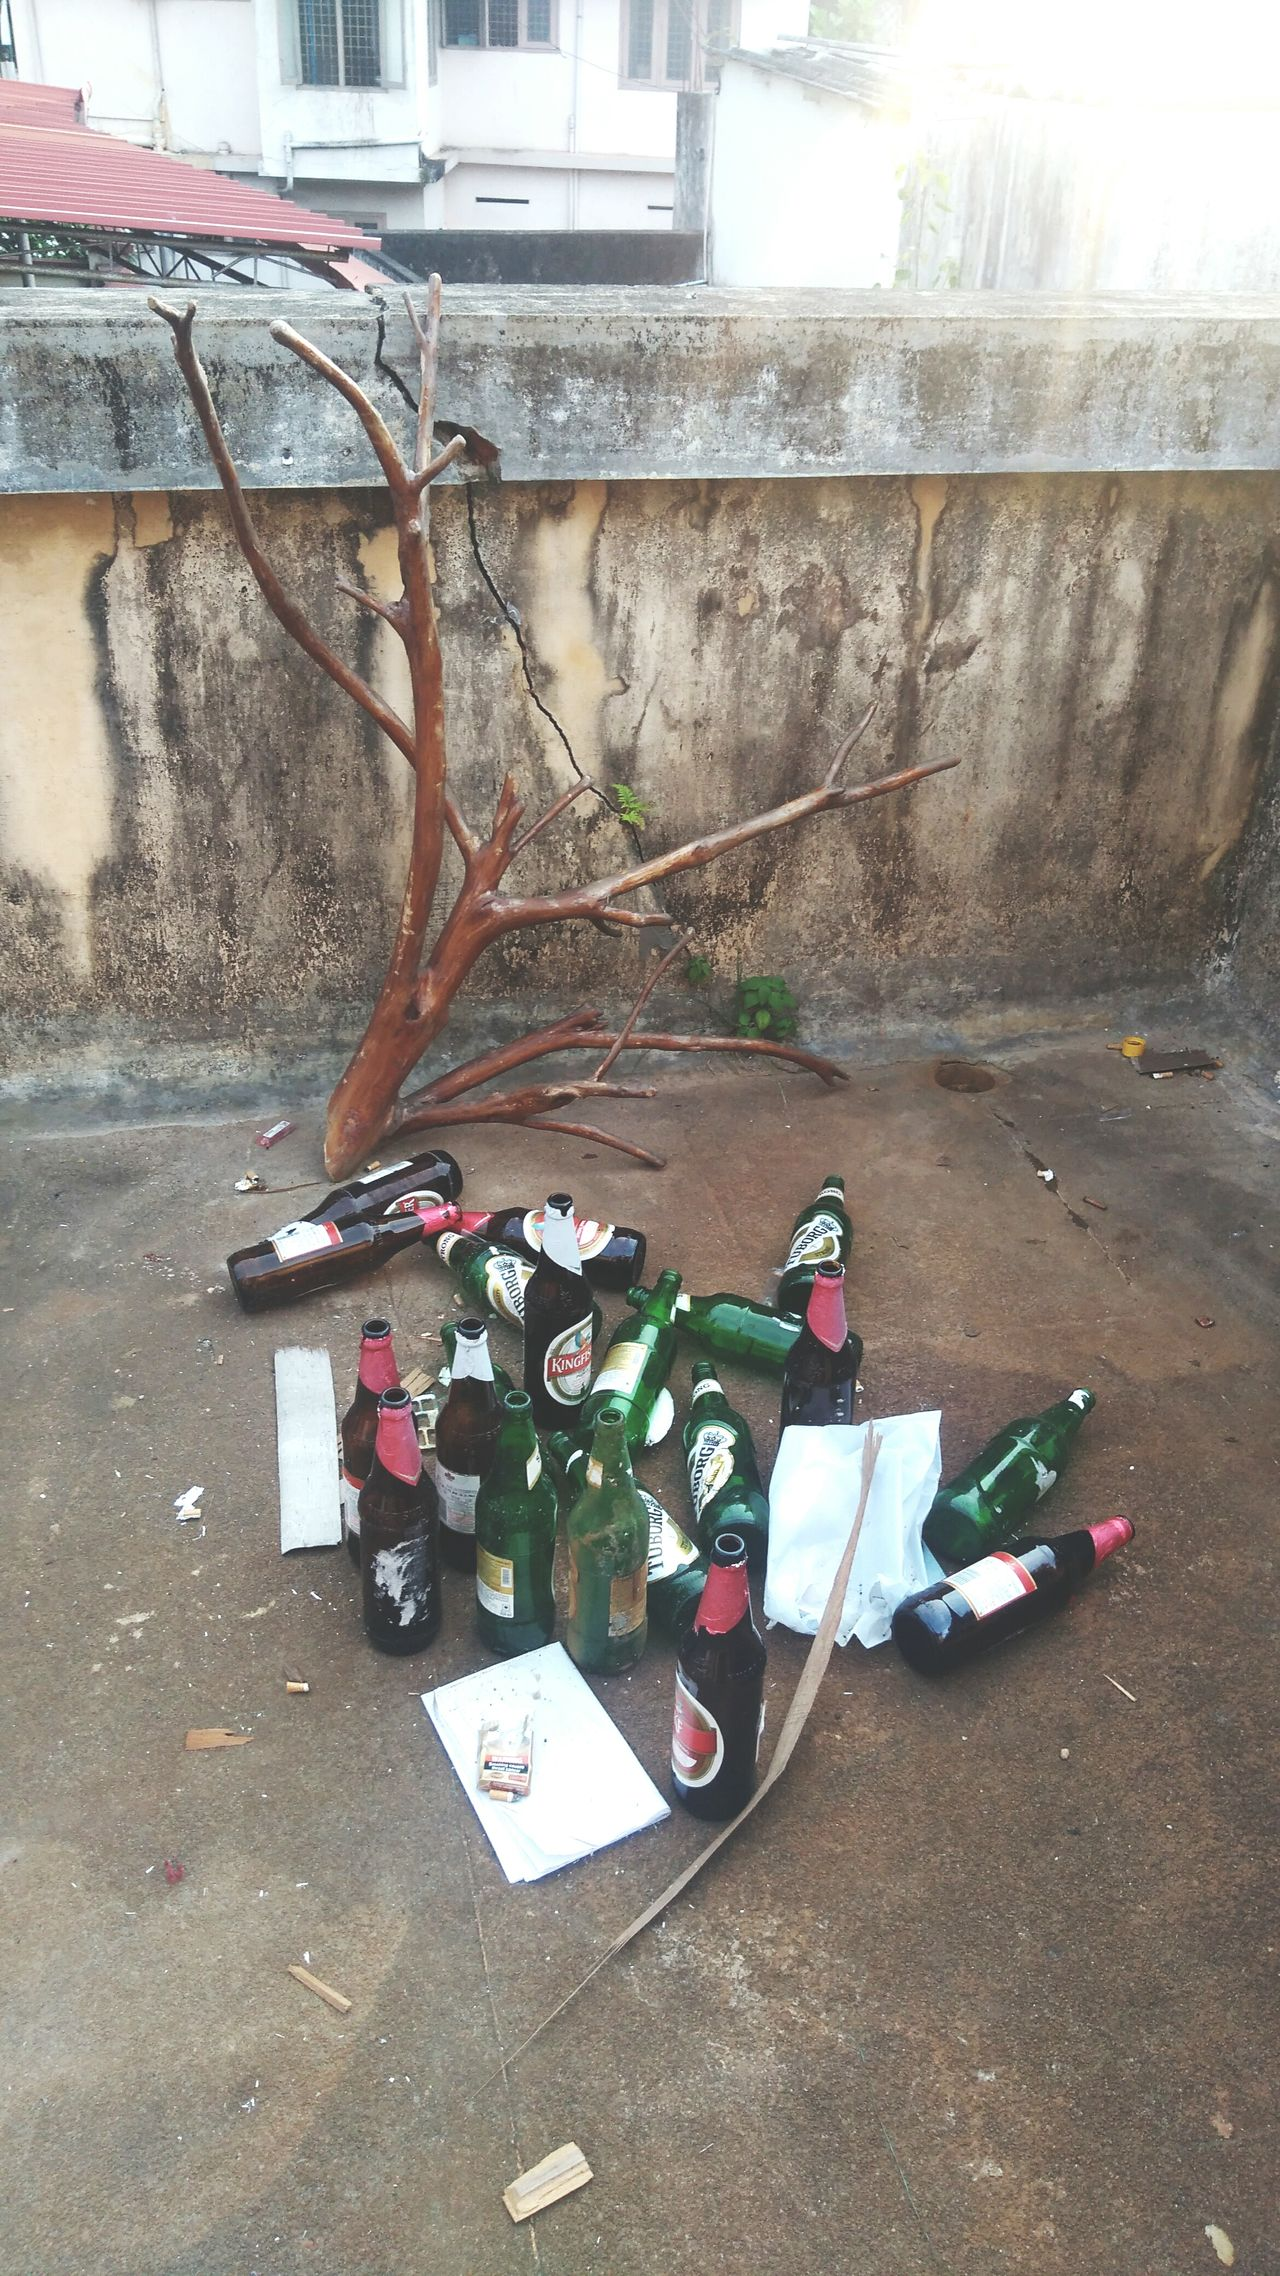 Branche of carboys nd coffin nails Carboy Coffin Nails No People Day Outdoors